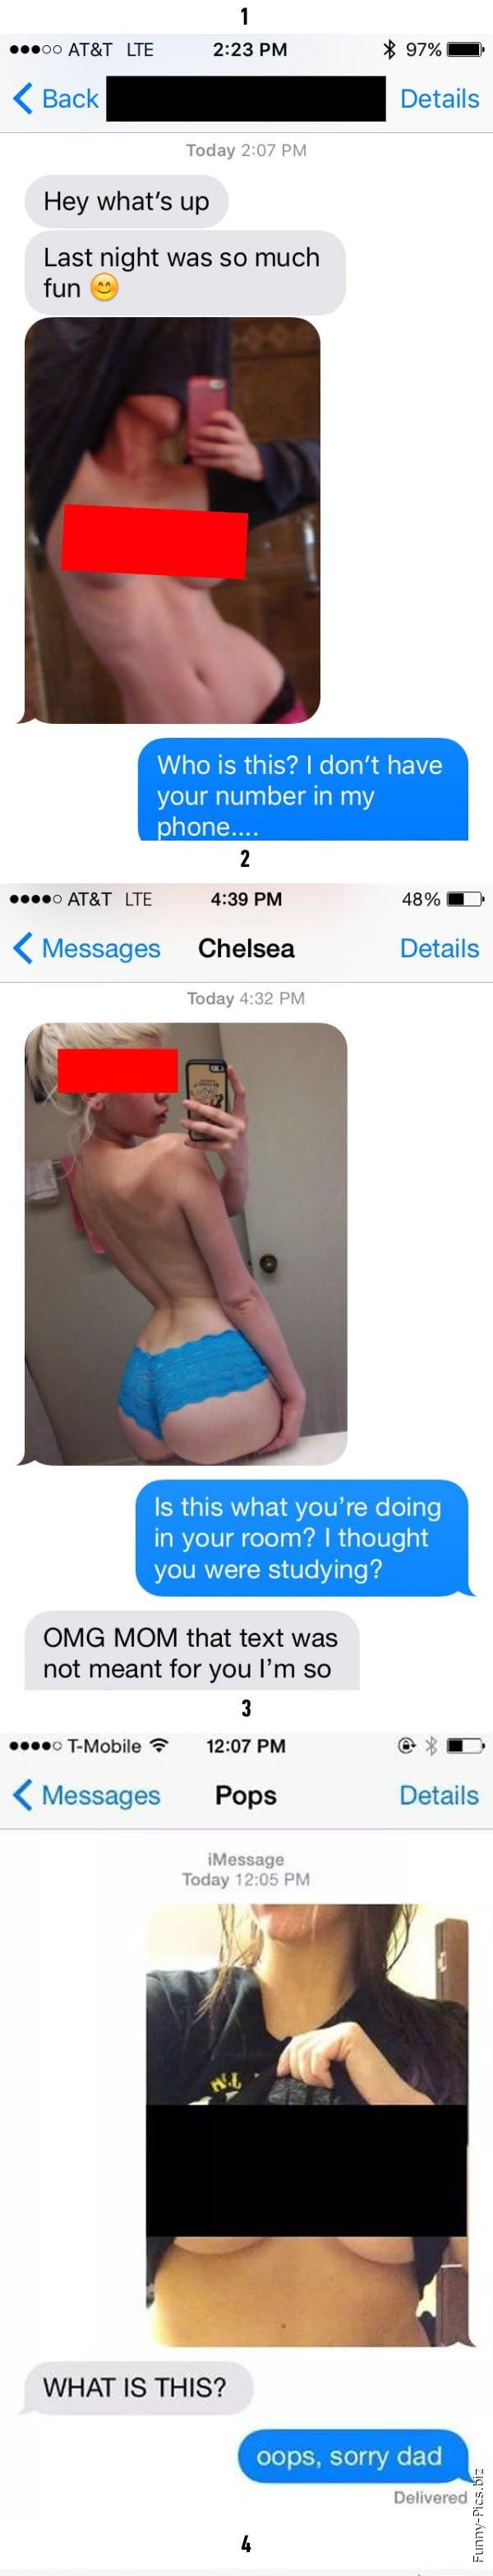 Images sent to wrong number 1